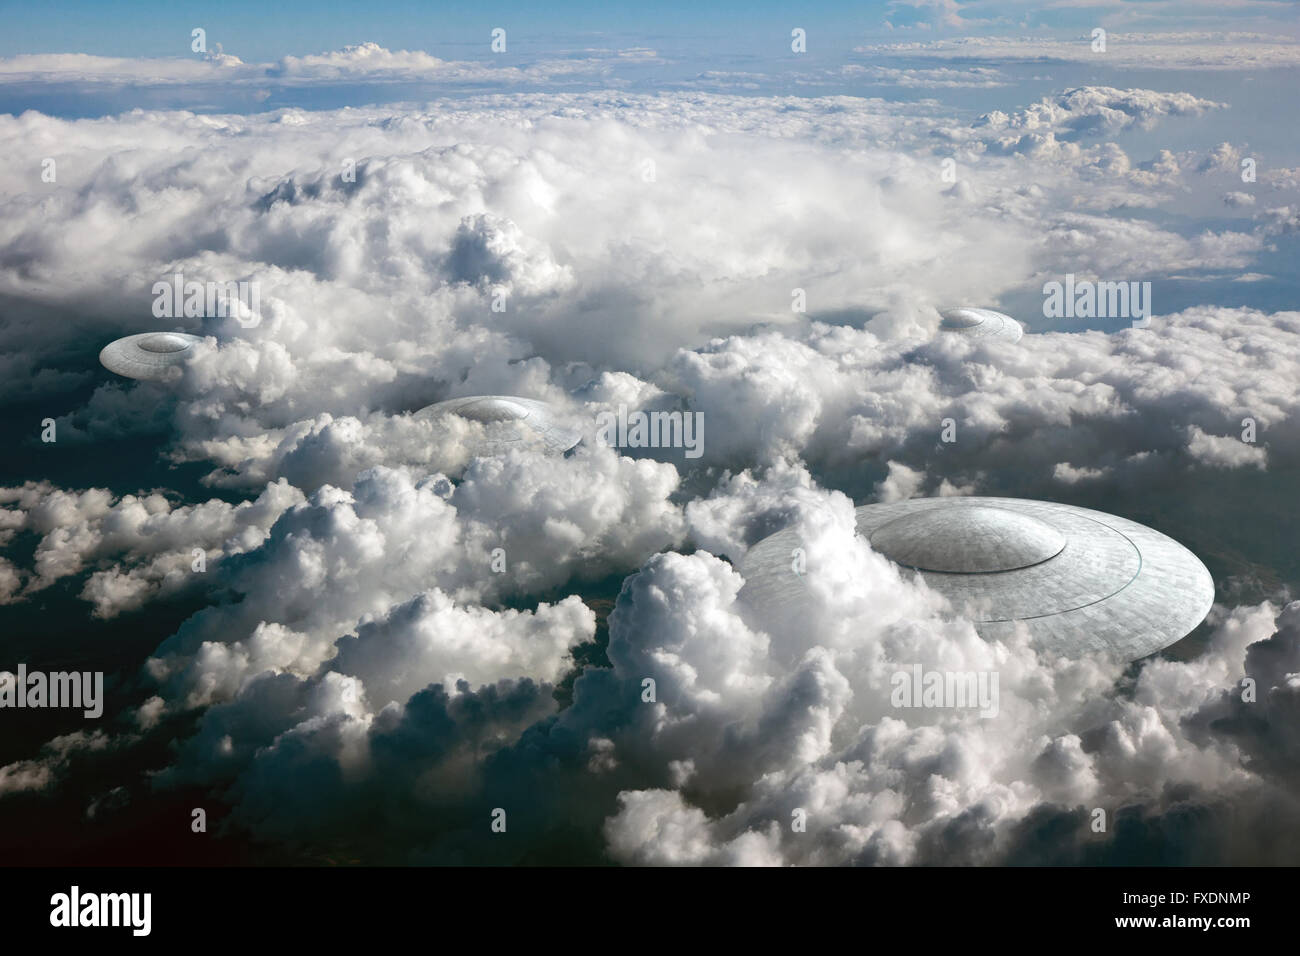 3d rendering of flying saucer ufo in the clouds - Stock Image